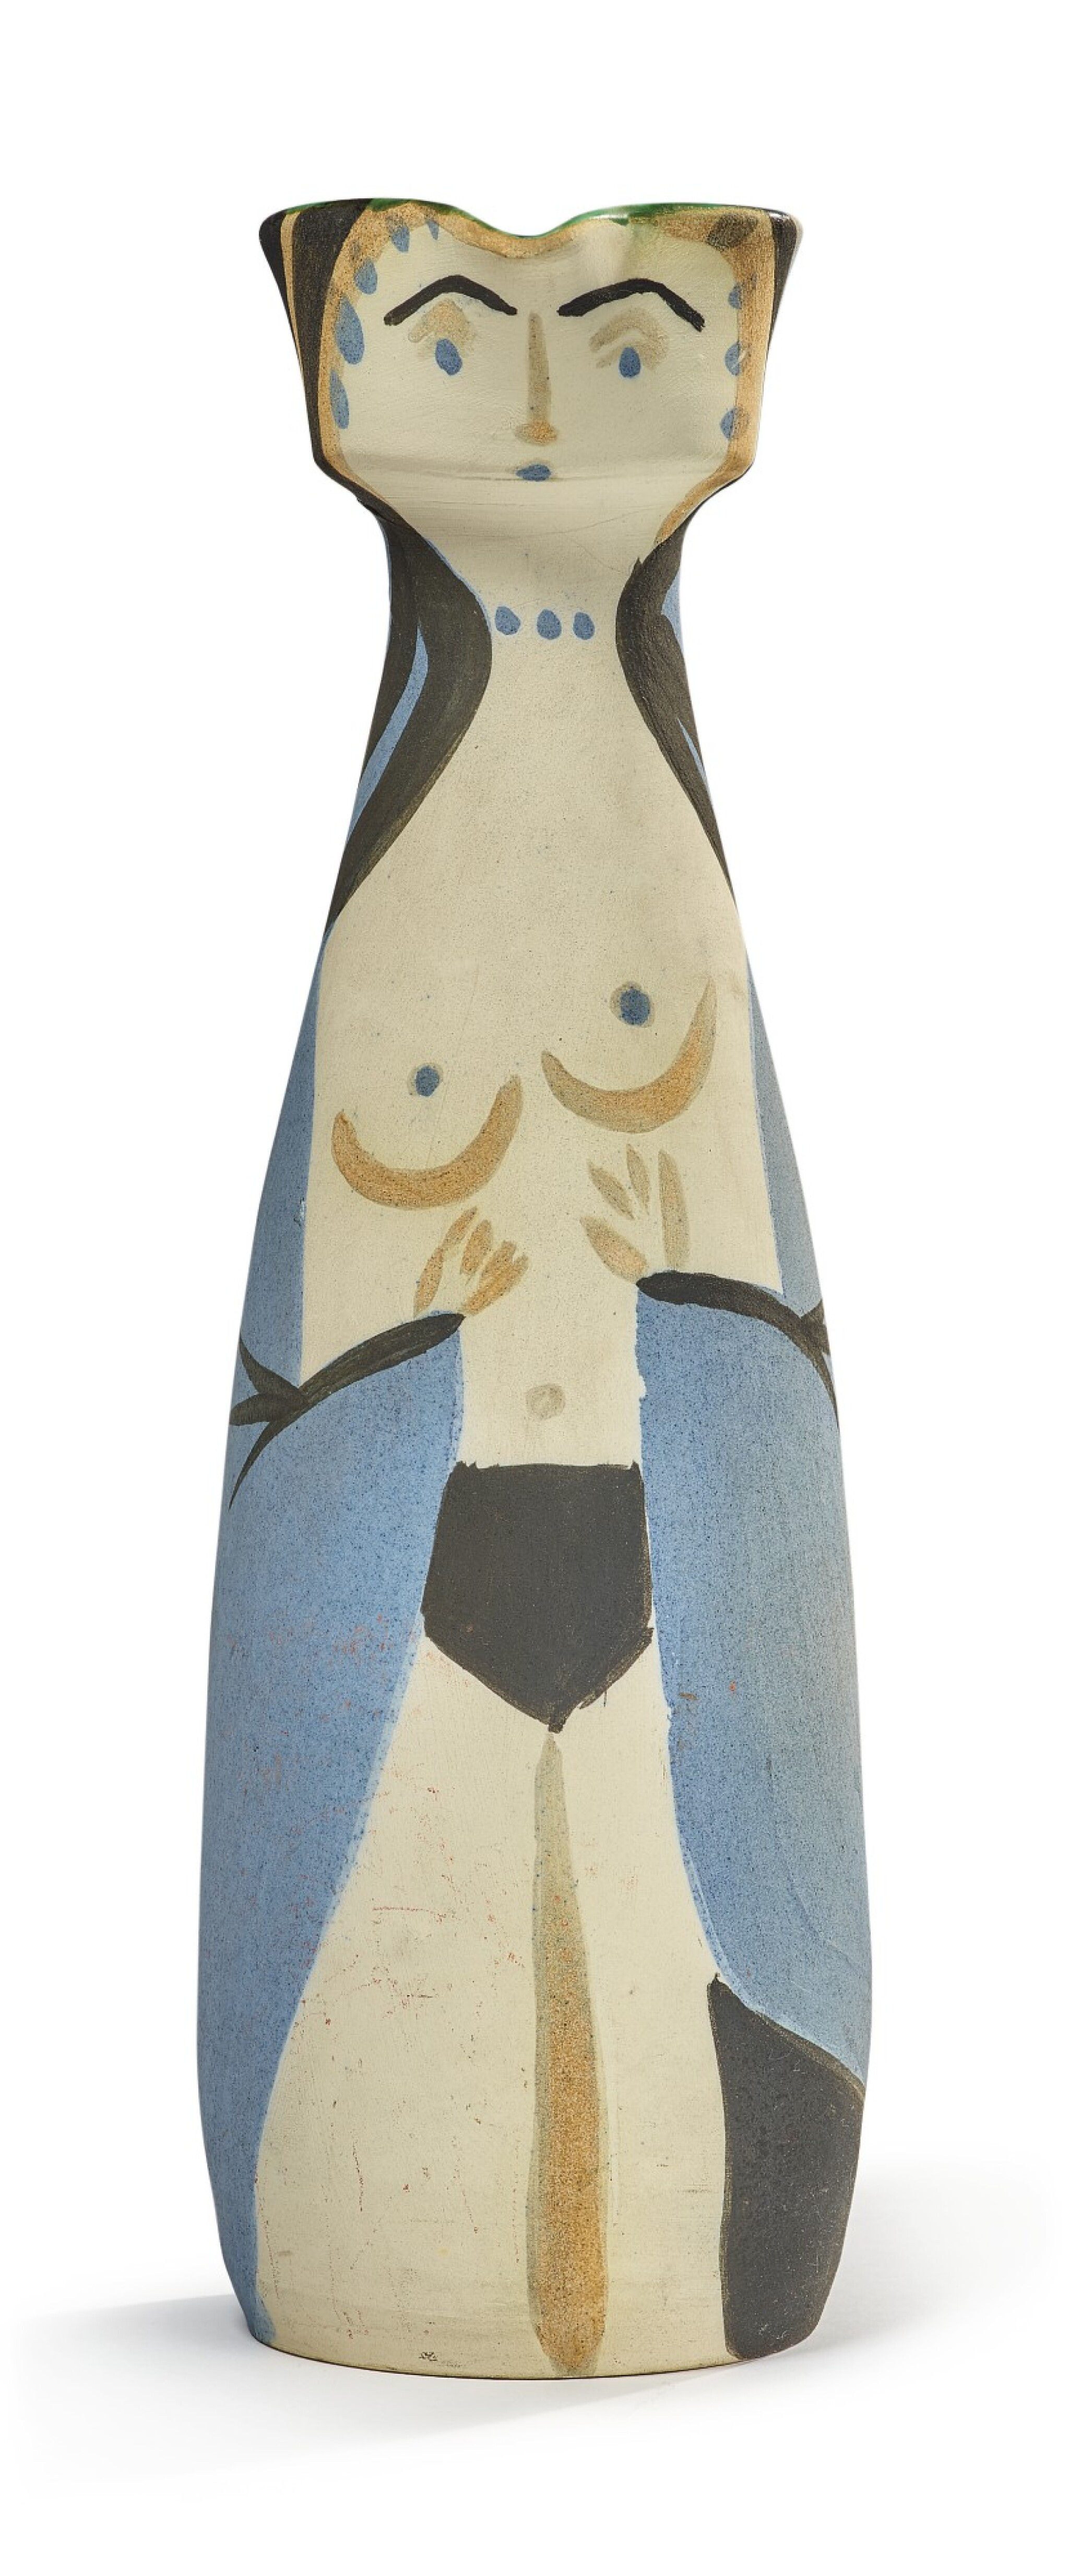 View full screen - View 1 of Lot 40. PABLO PICASSO | FEMME (A. R. 297).